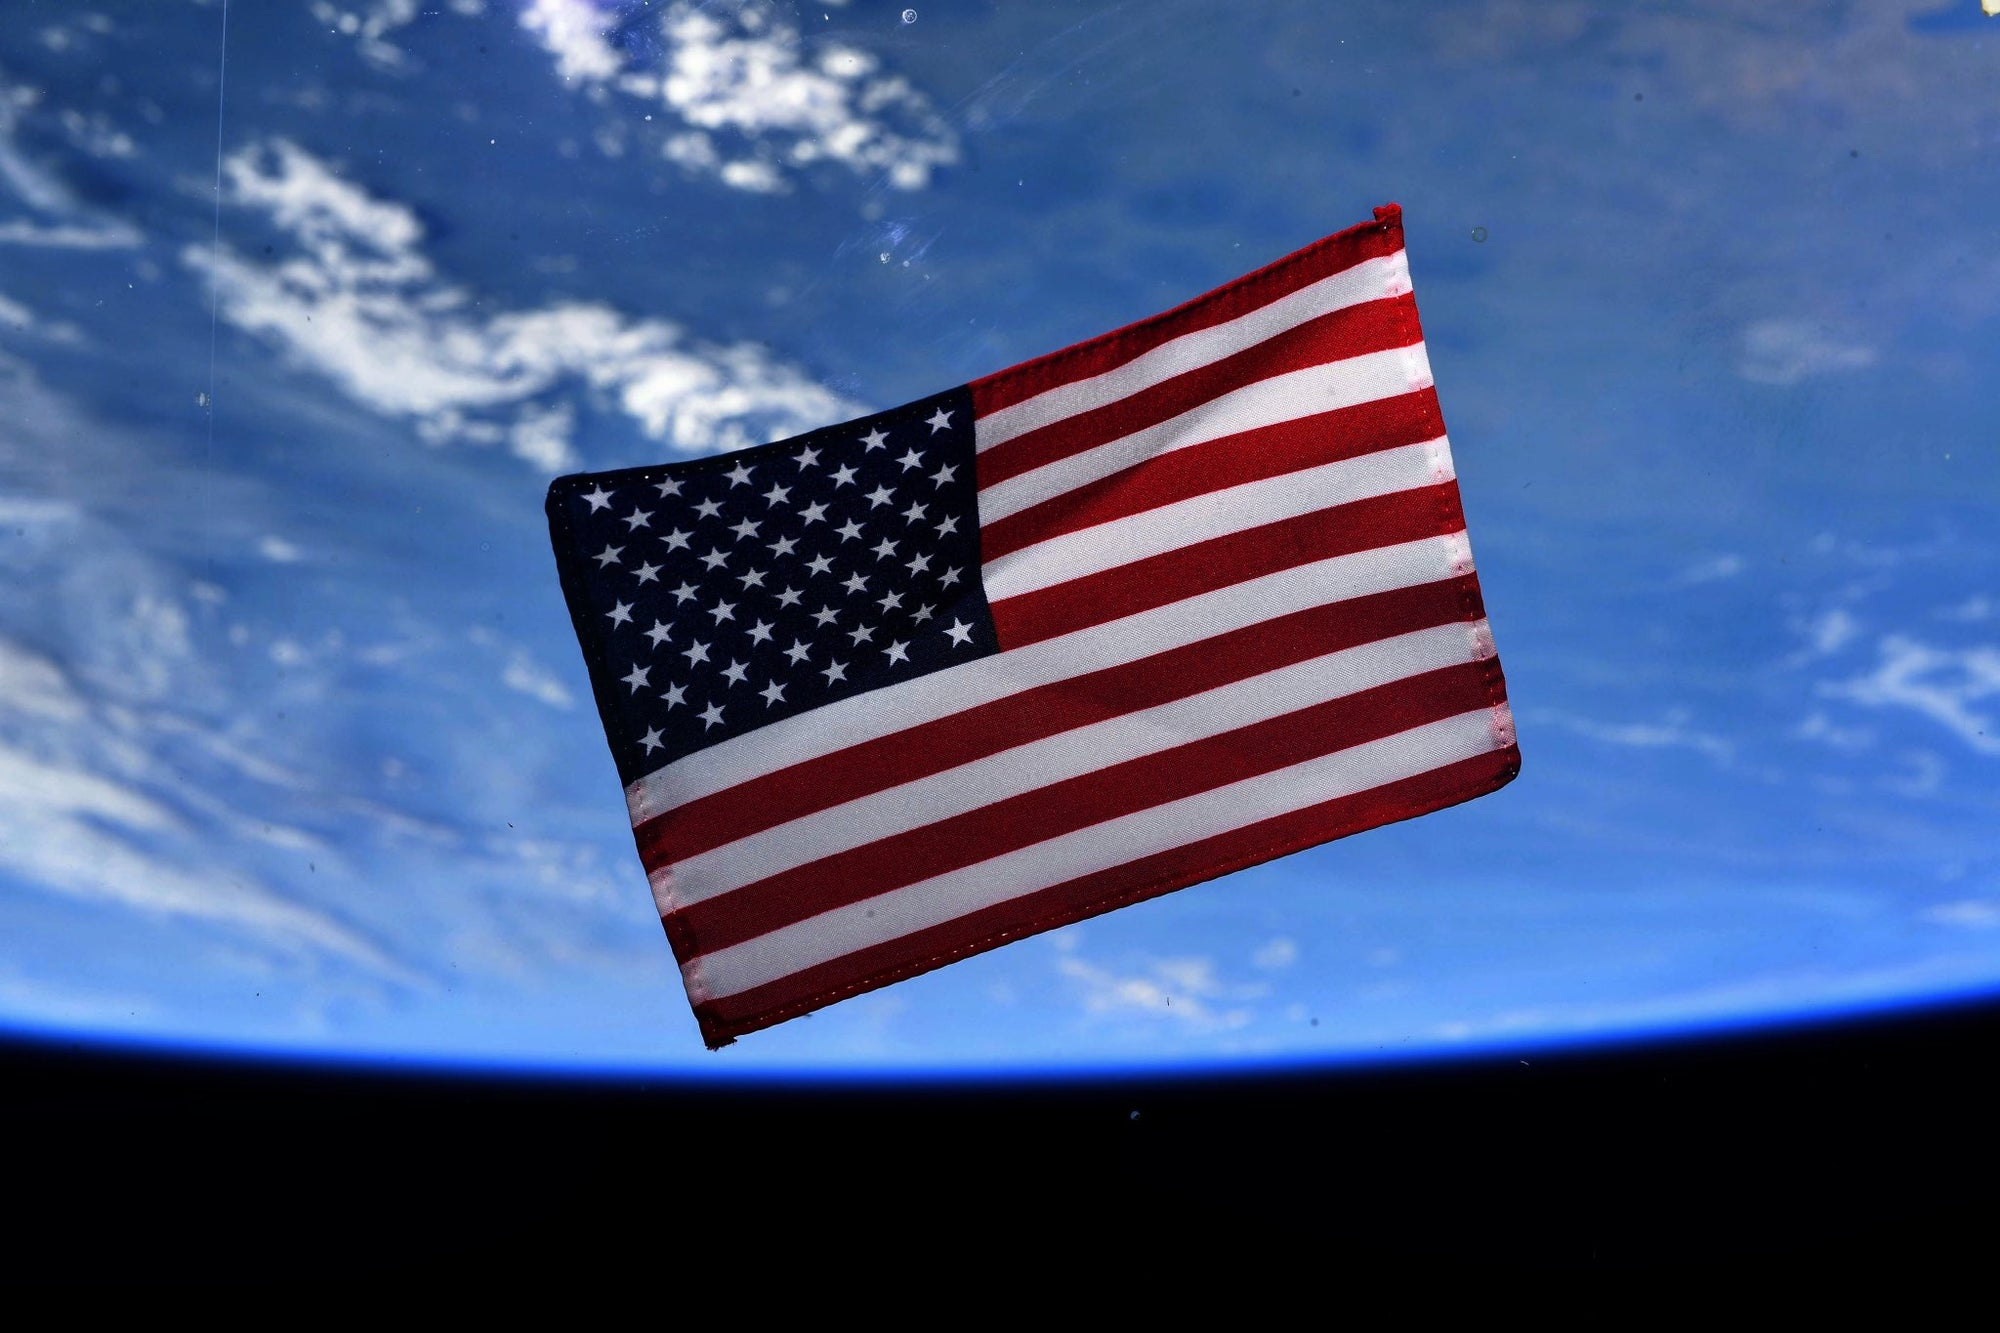 NASA Astronauts share plans to return historic U.S. flag aboard SpaceX's Dragon as they commemorate July 4th